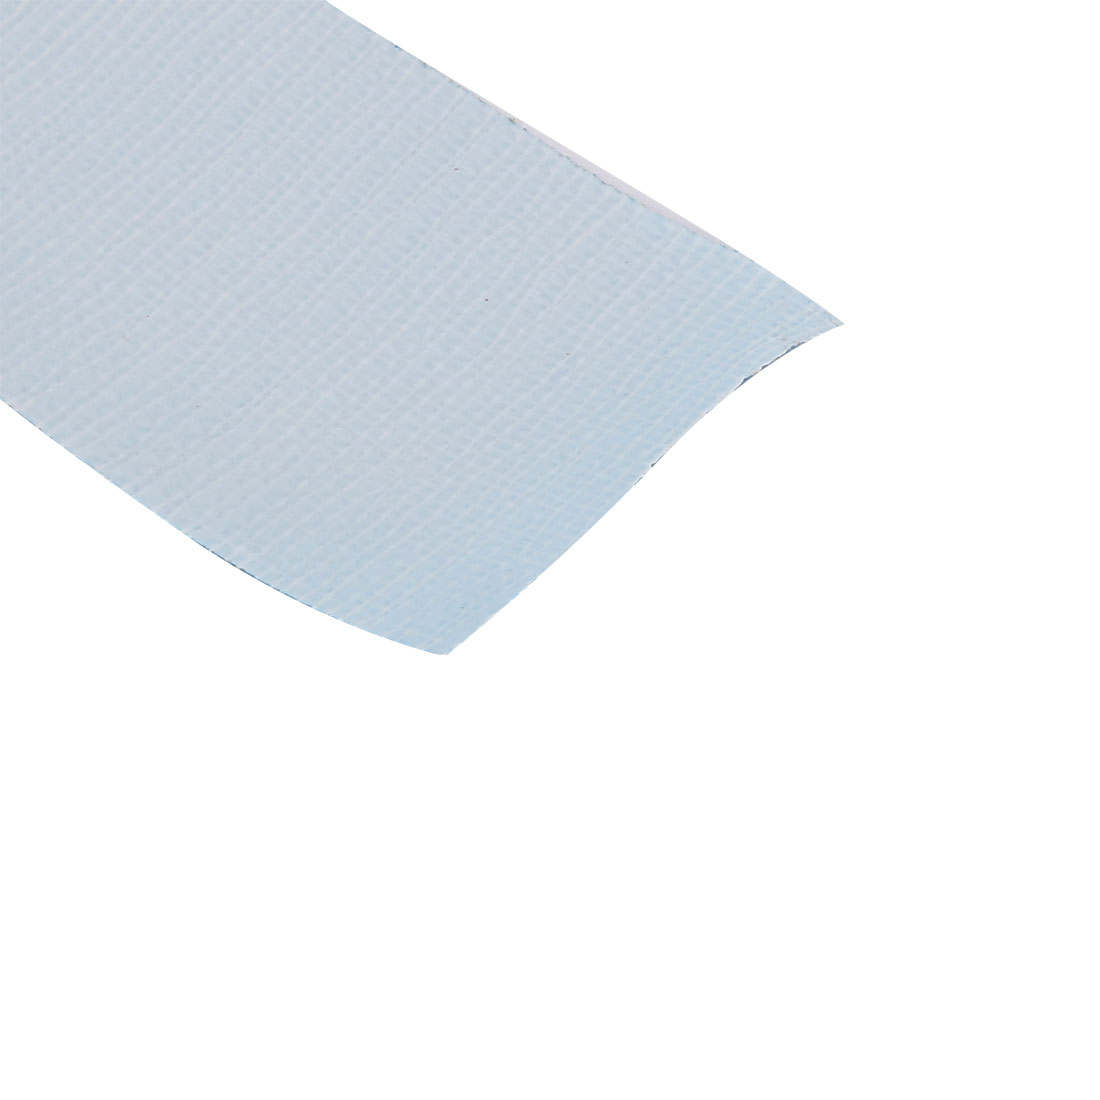 Blue Single Sided Strong Adhesive Cloth Duct Tape 1.6inch Width 32.8ft Length - image 2 of 3